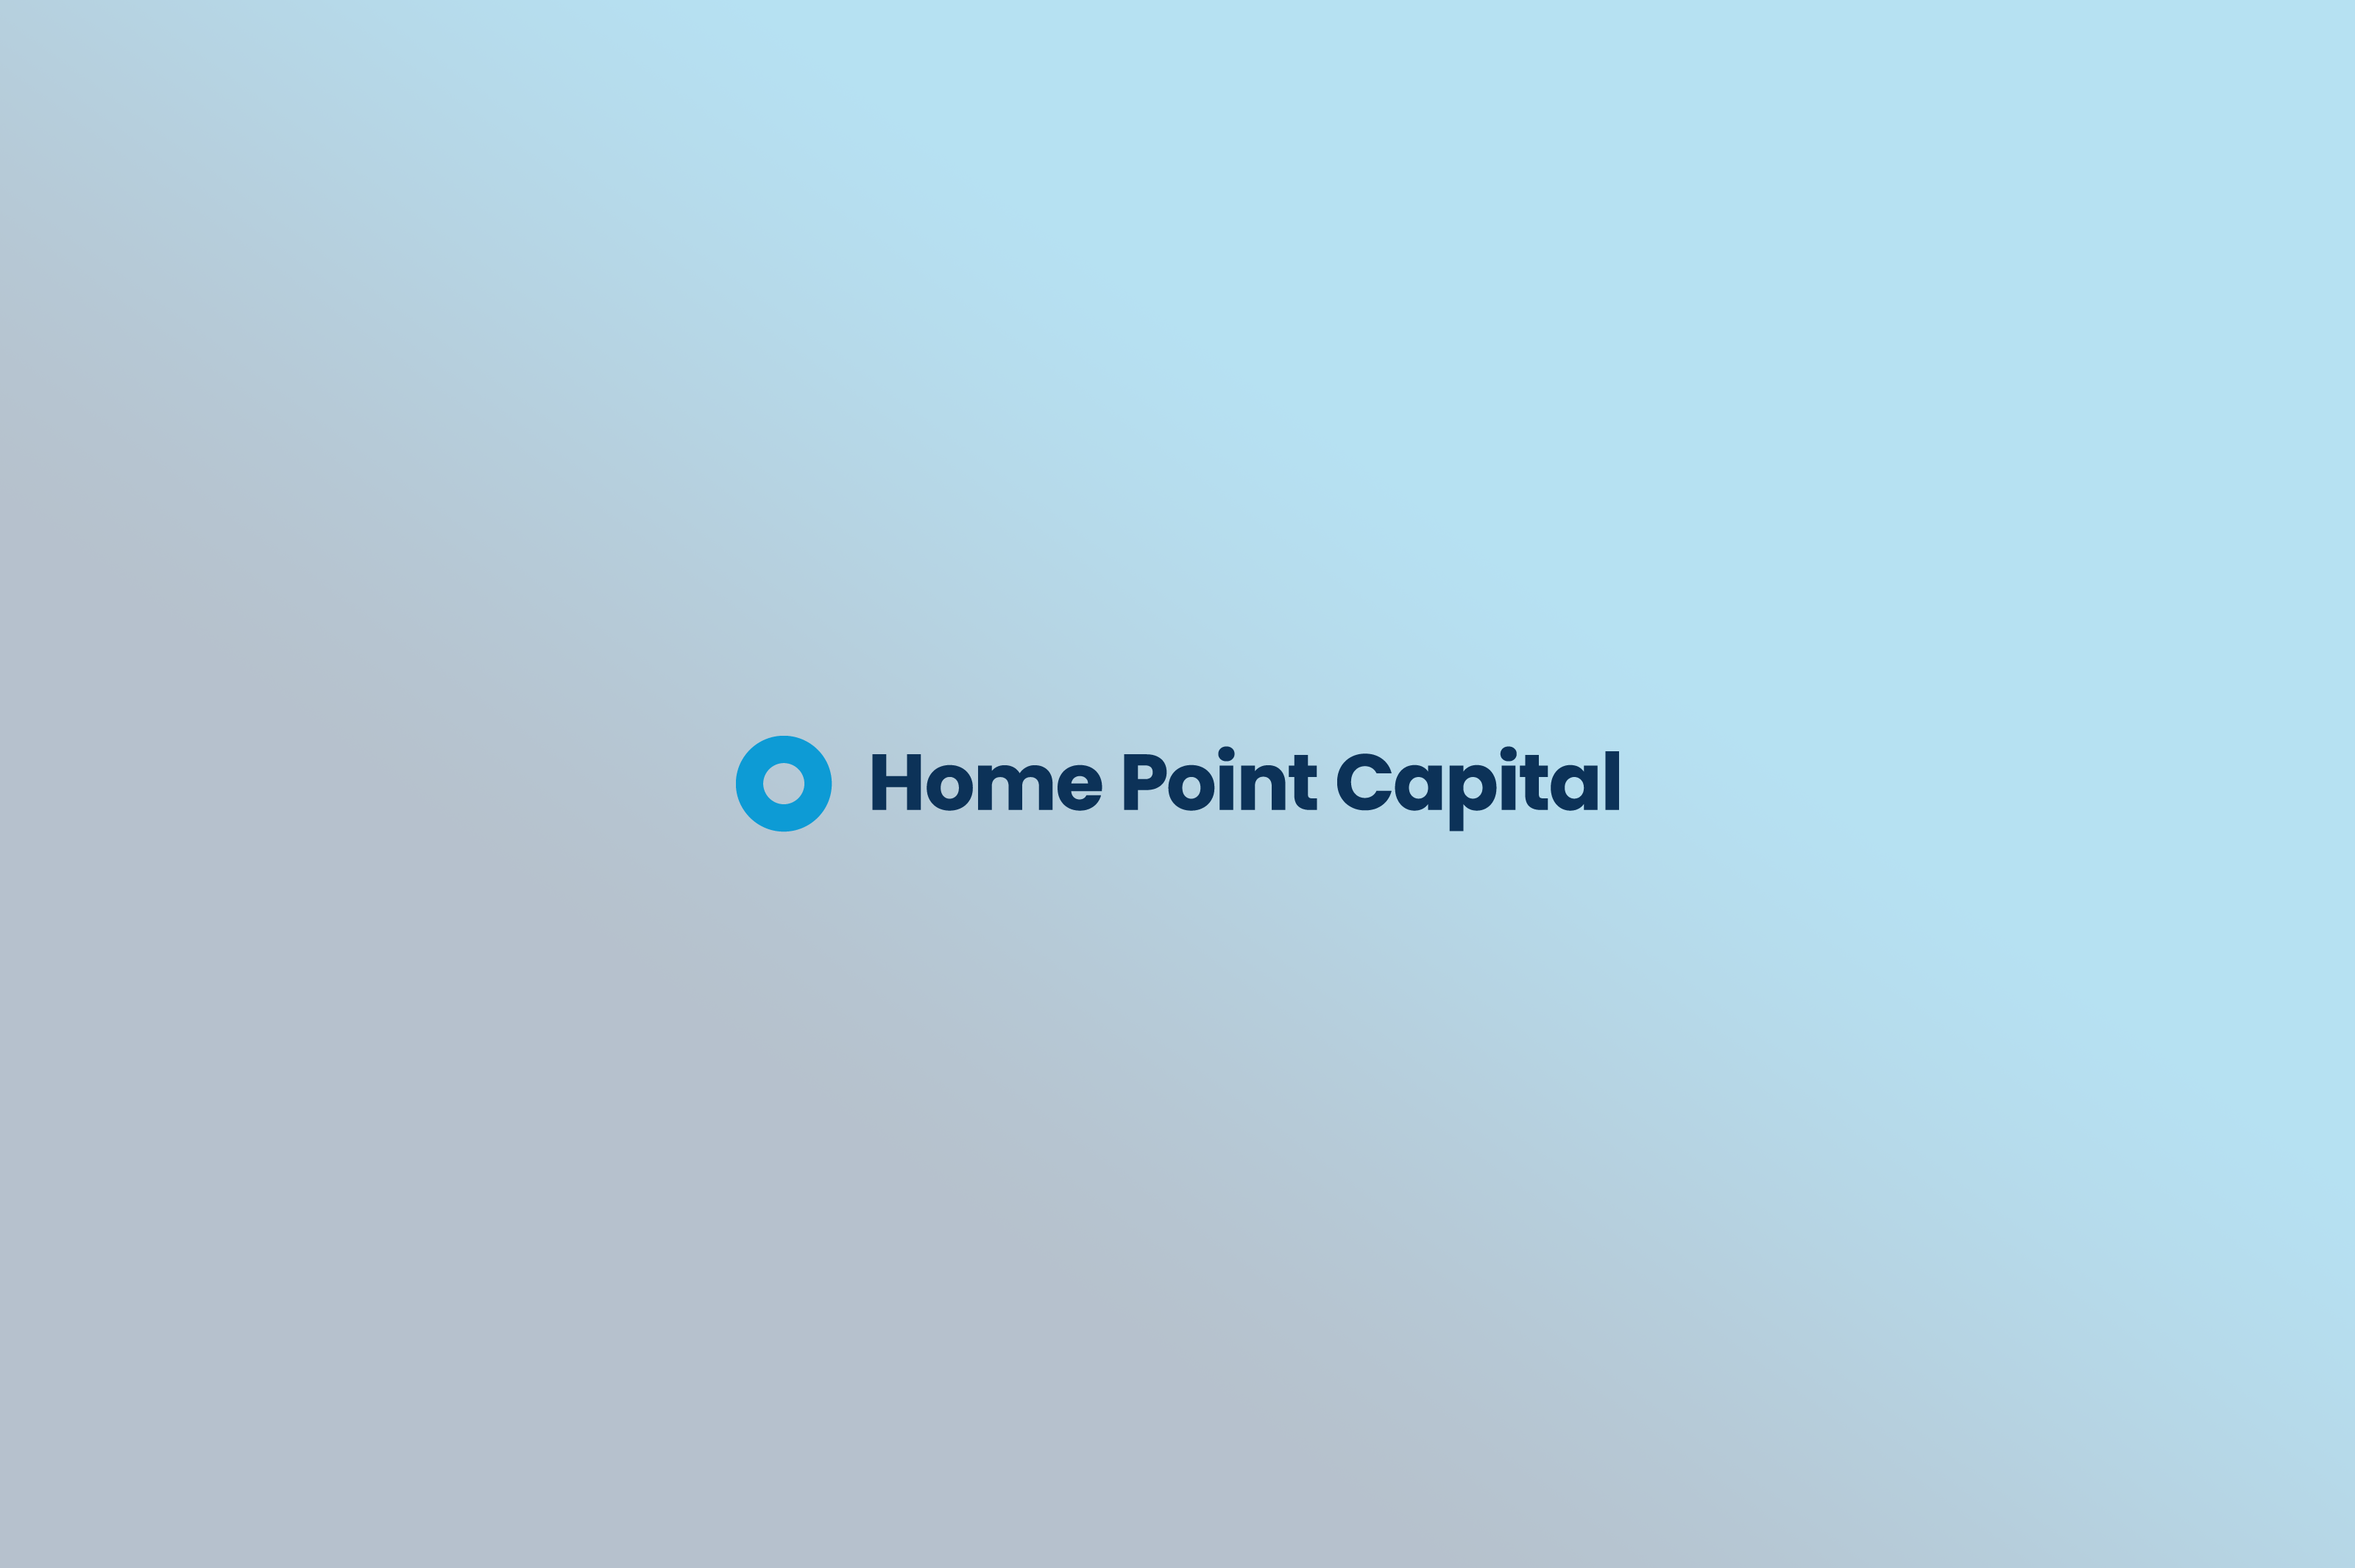 Home Point Capital turns a profit amid housing market boom in 2020